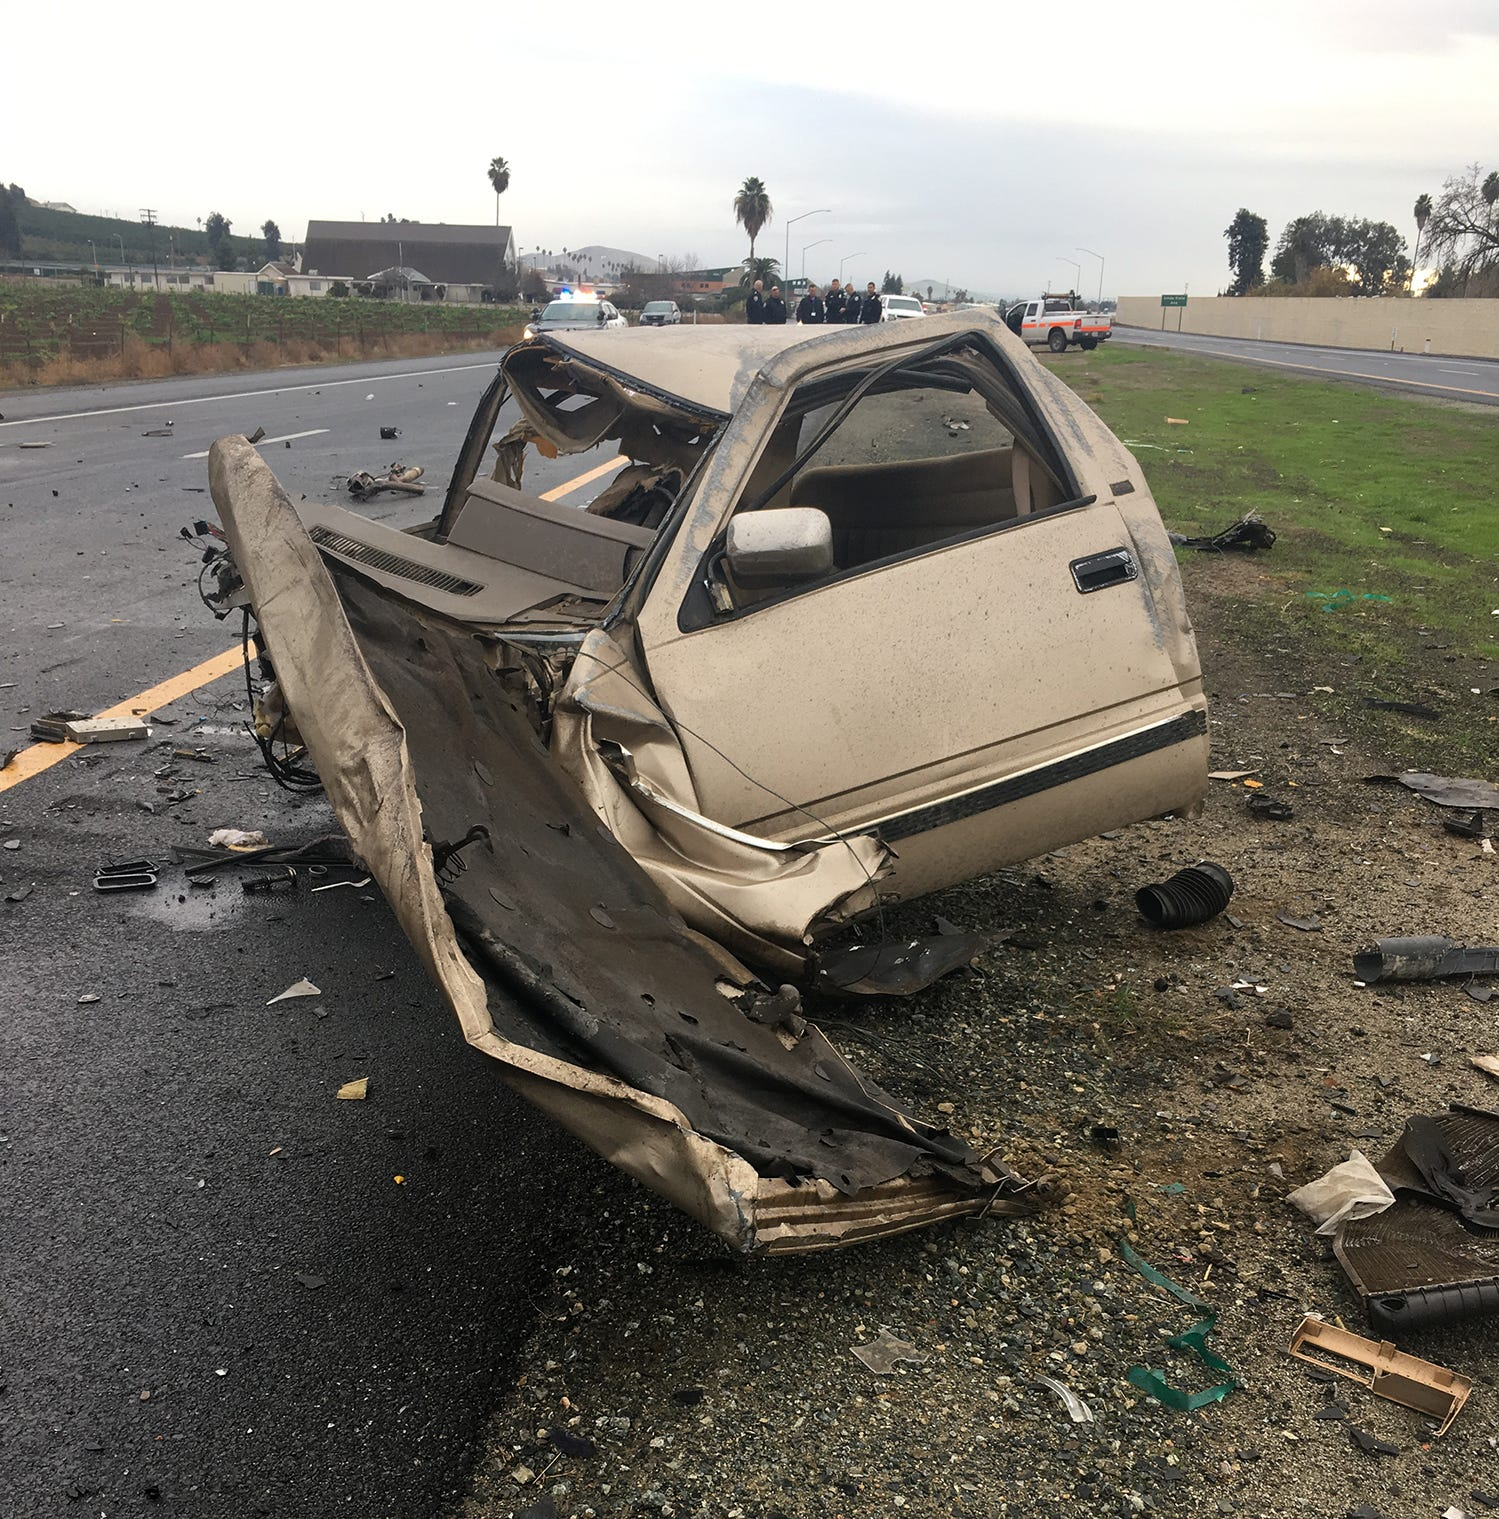 Tulare County 'reign of terror' ends in fiery crash outside Porterville, suspect dead